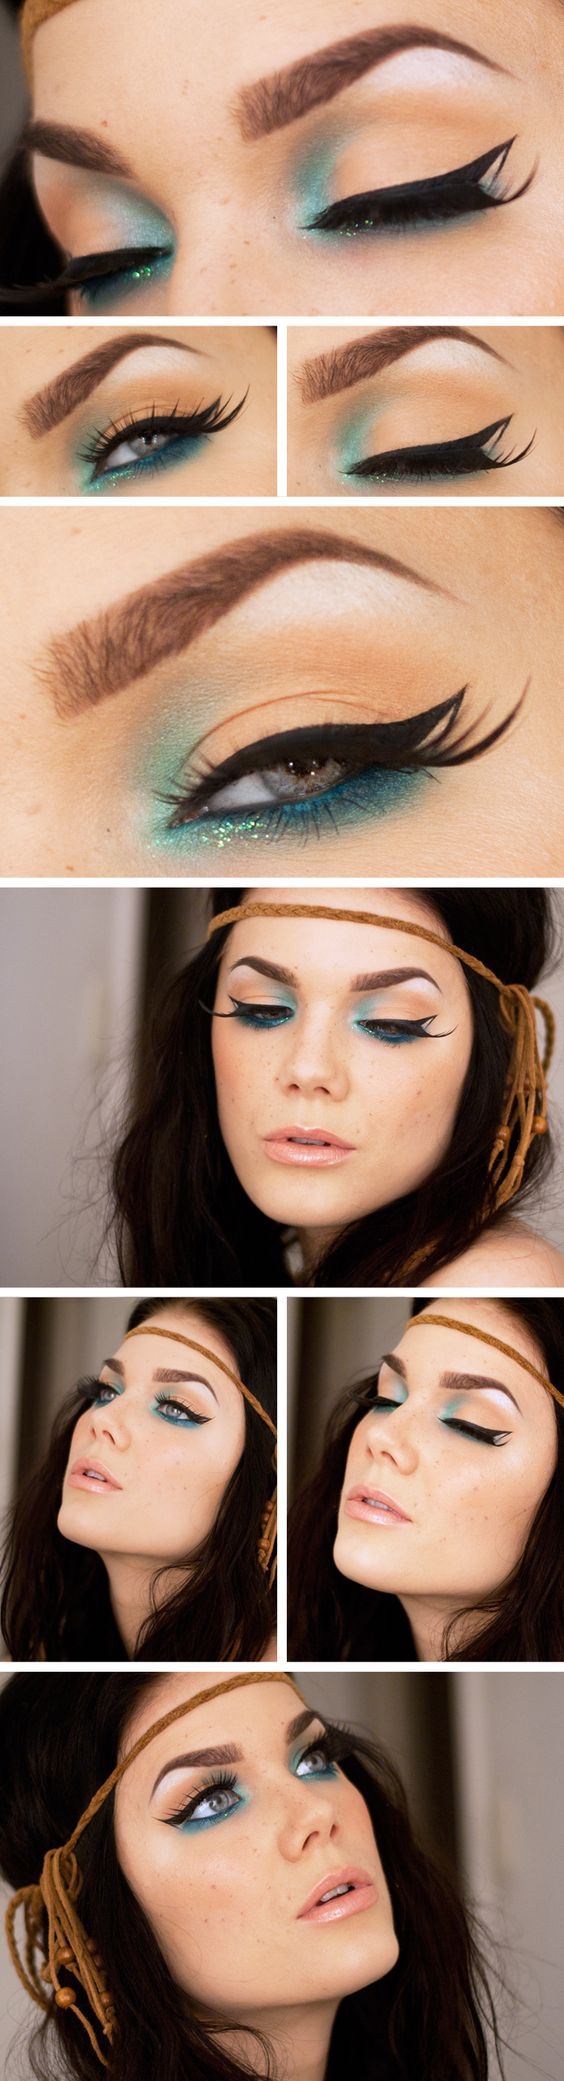 Latest Summer Makeup Ideas Amp Trends 2019 2020 Beauty Tips